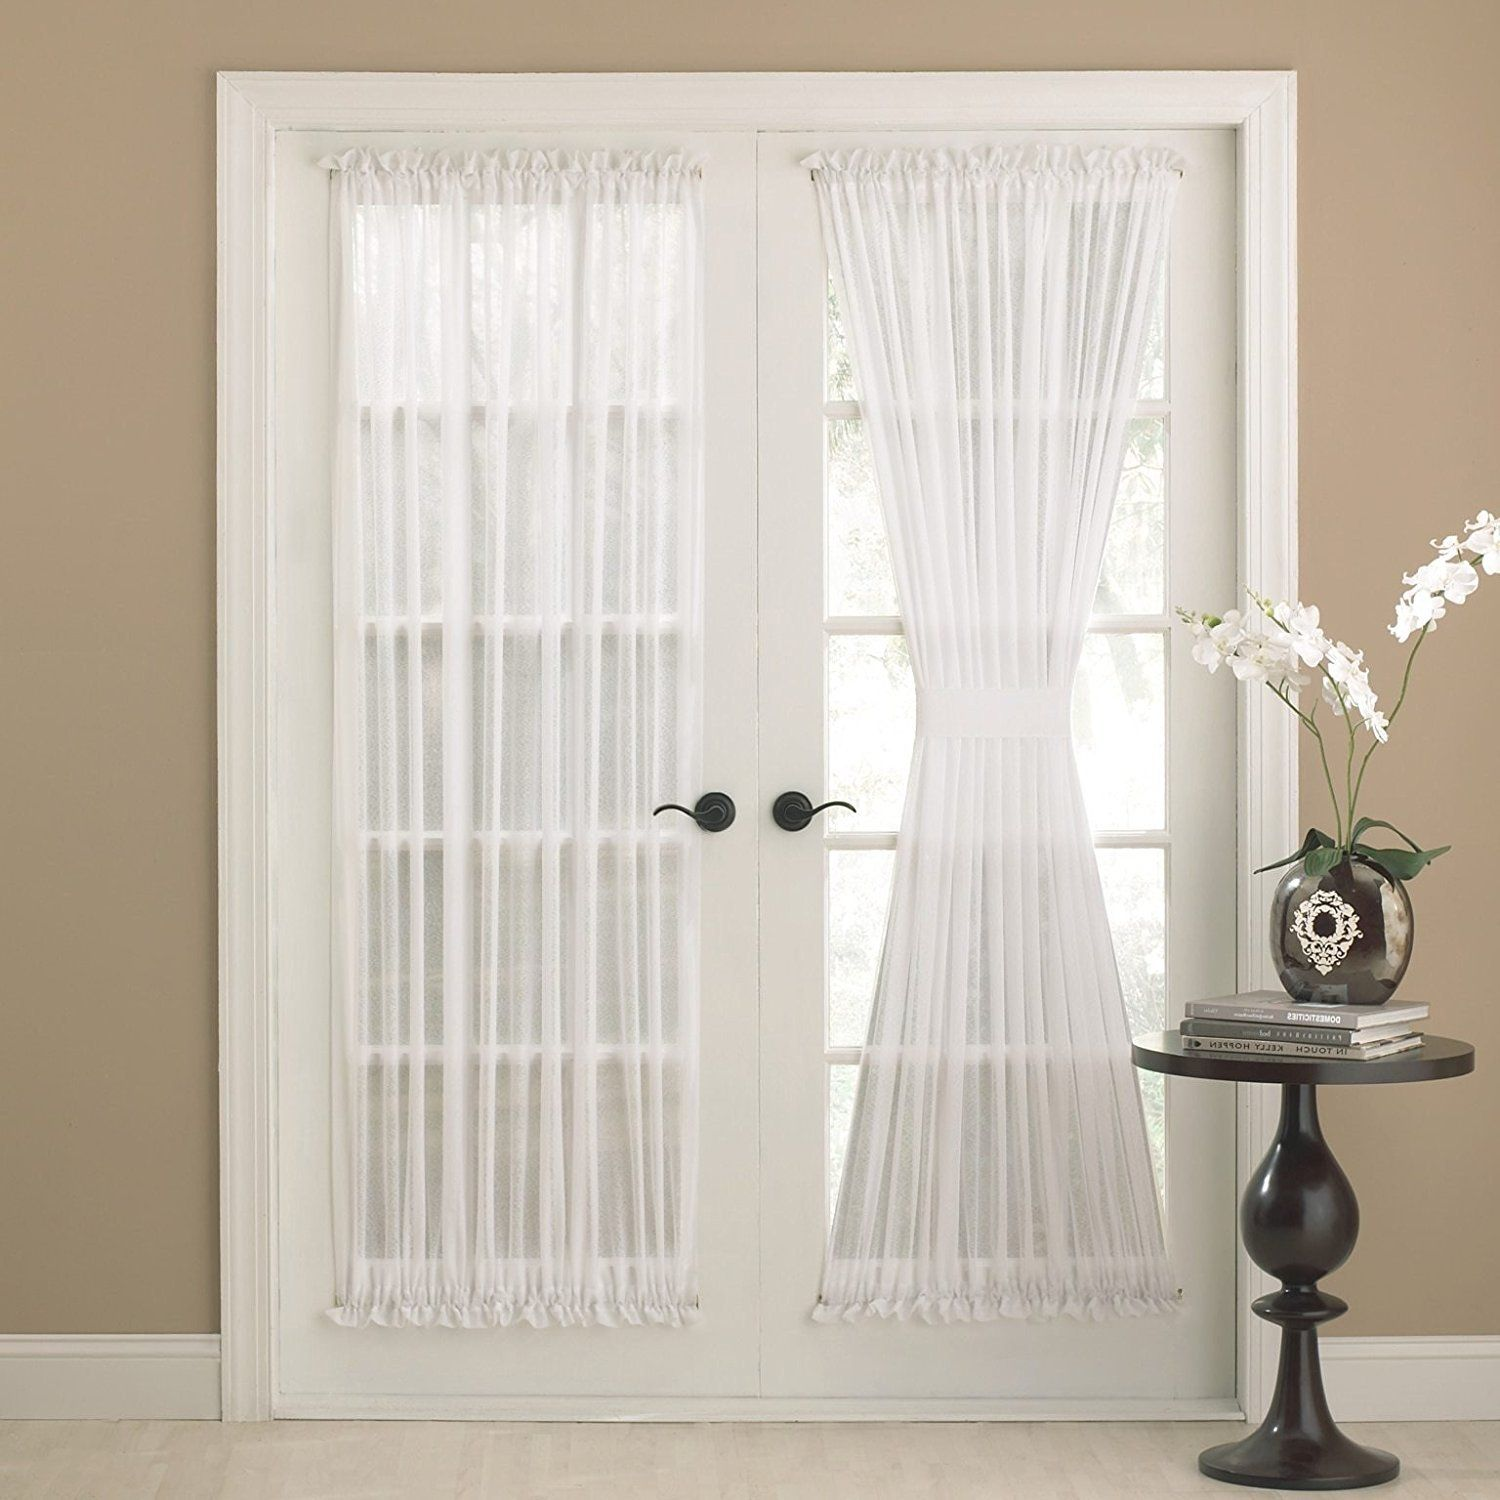 72 Inch Eggshell Solid Color Semi Sheer French Door Curtain Single Panel White Color Glass Door Pa Glass Doors Patio French Door Curtains French Doors Interior